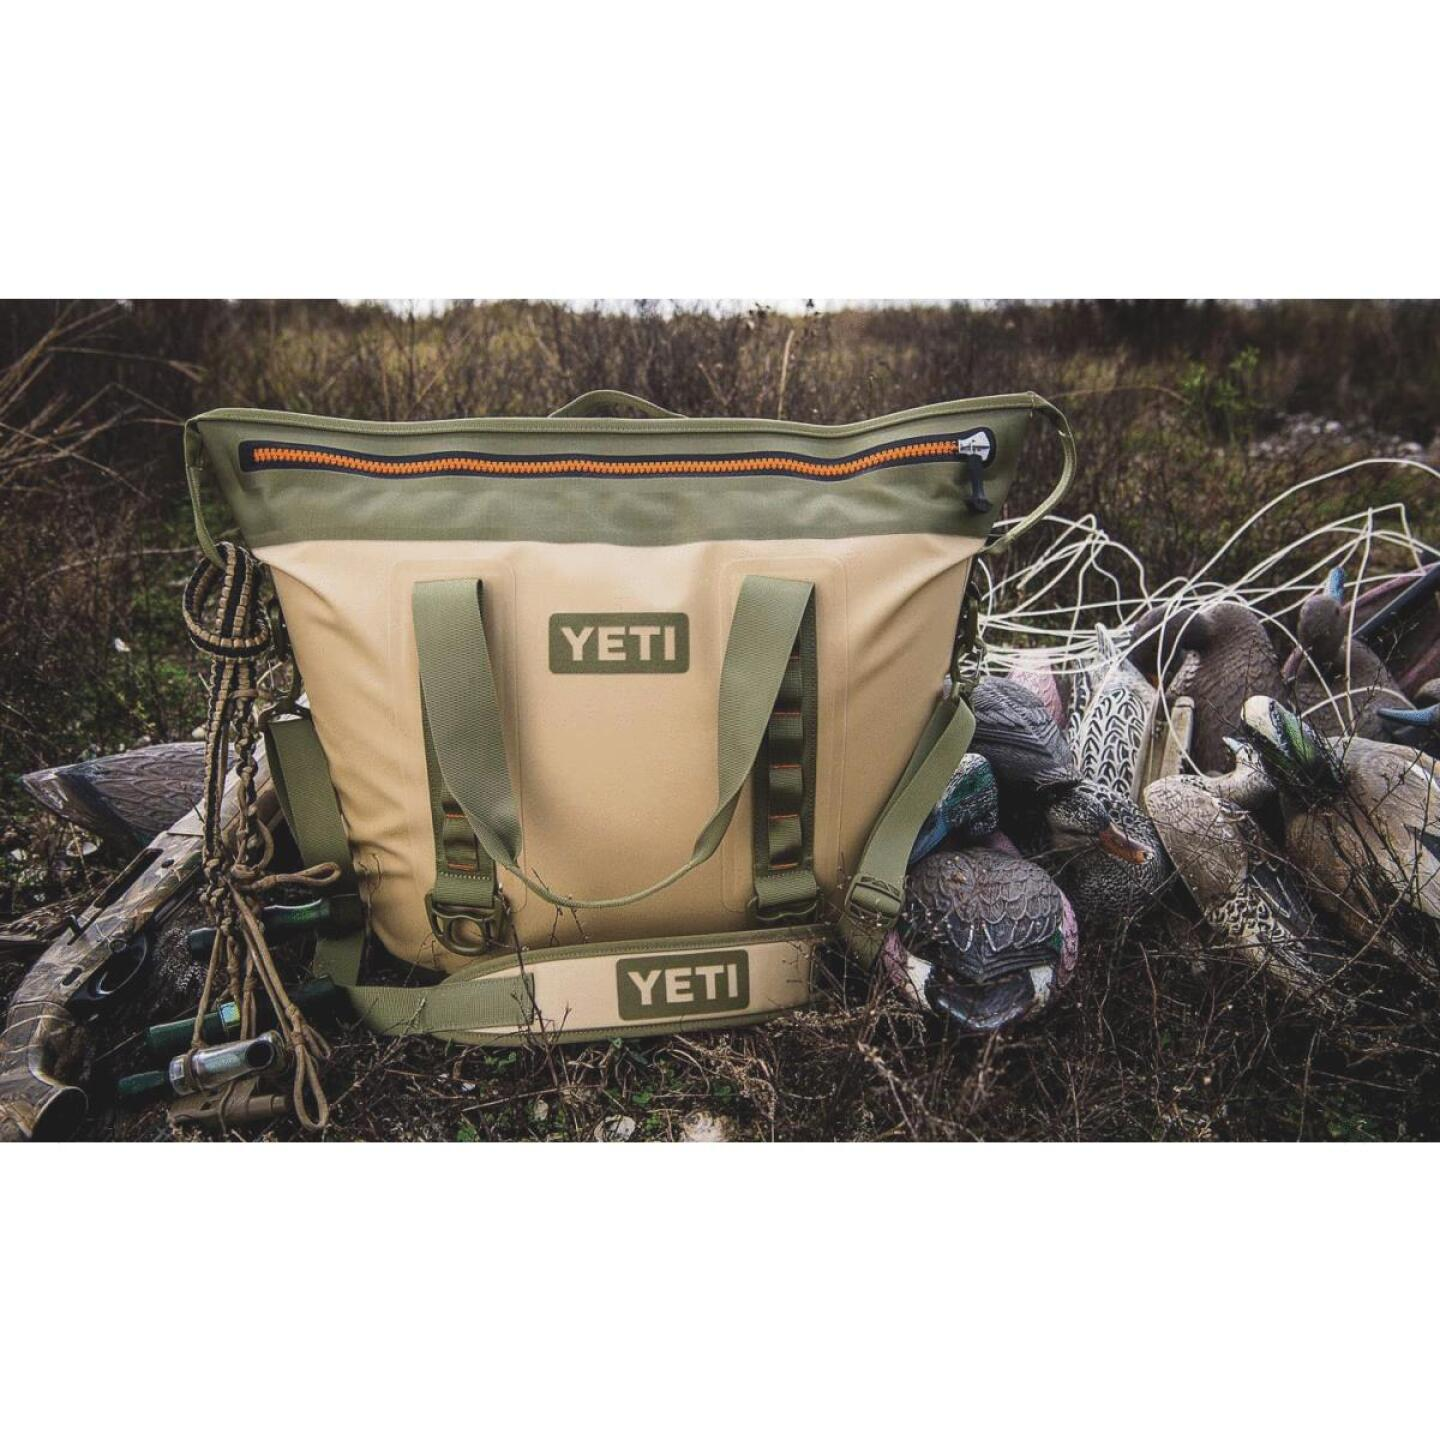 Yeti Hopper Two 34-Can Soft-Side Cooler, Tan Image 2